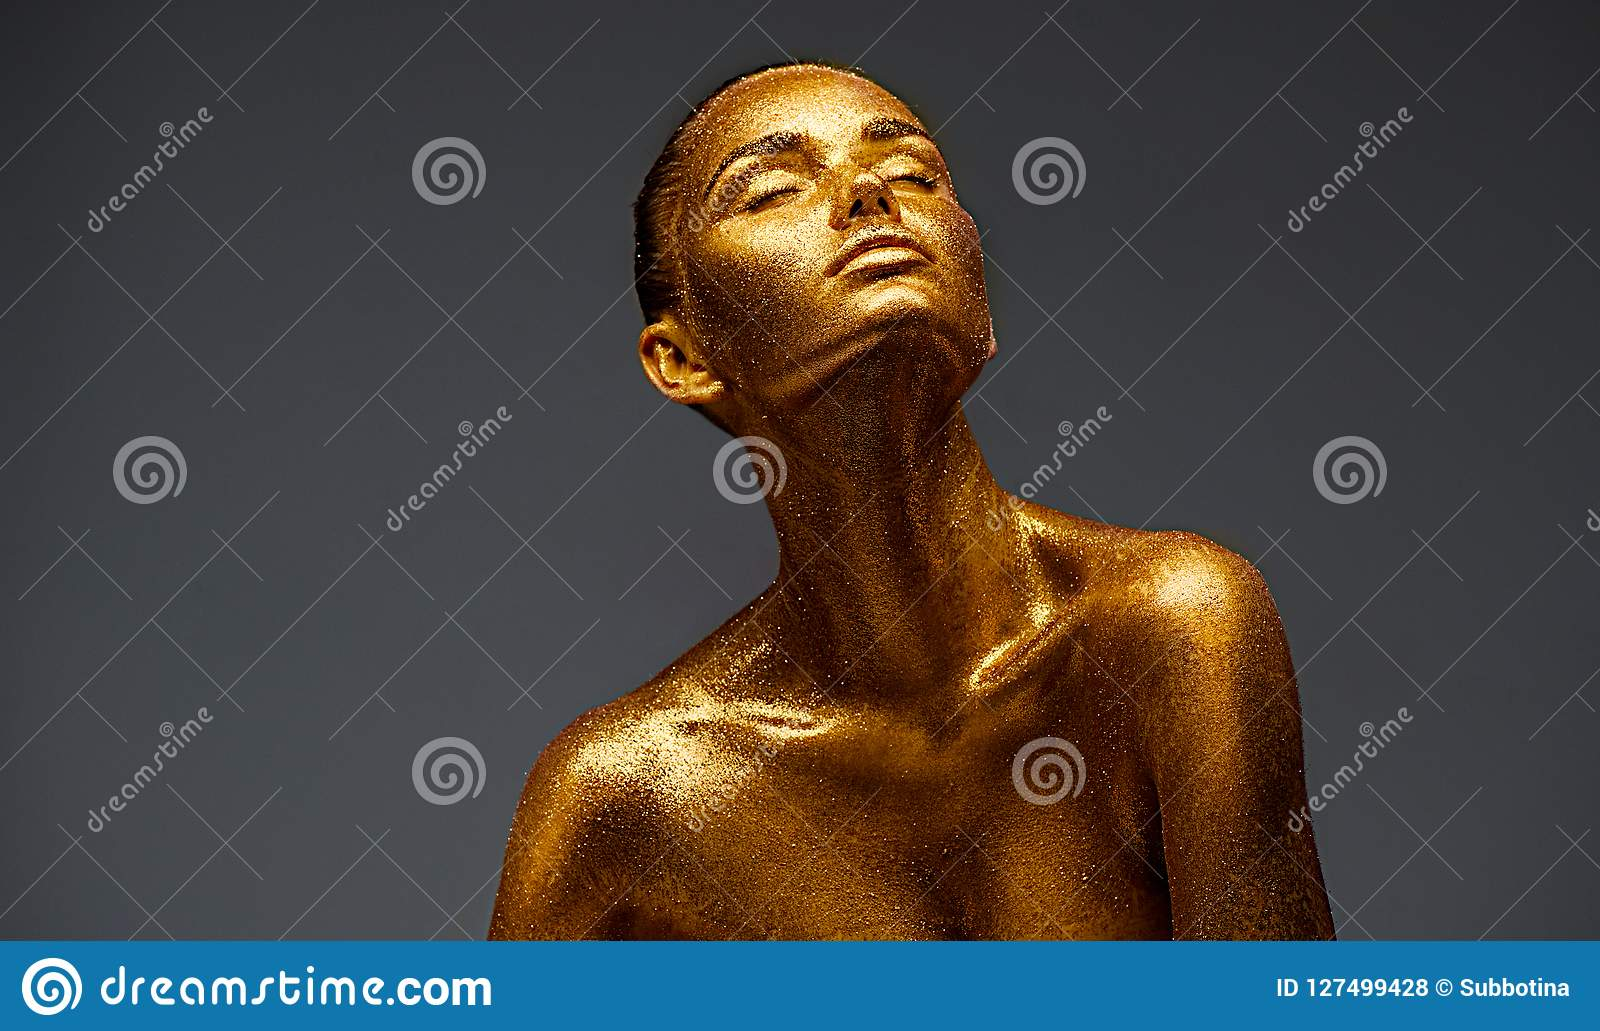 Golden skin beauty woman portrait. Fashion girl with holiday golden makeup. Body art